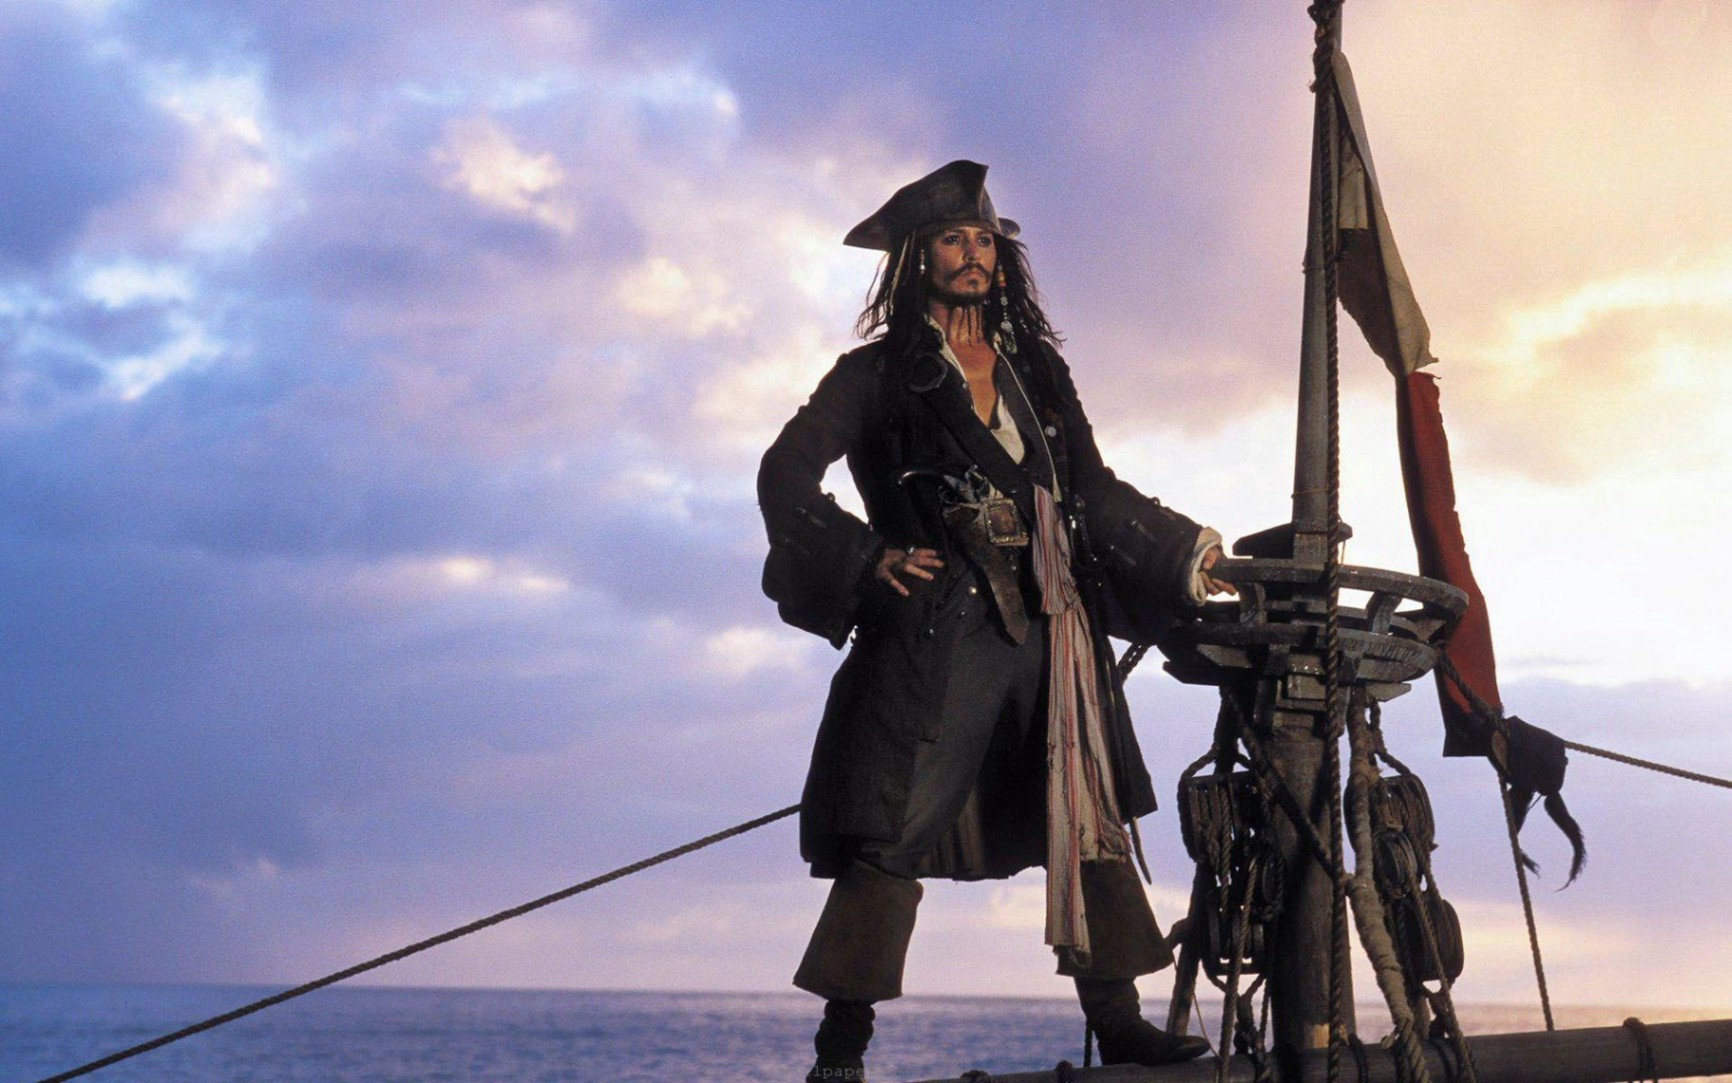 Interesting Facts About Johnny Depp that Fans May Not Know